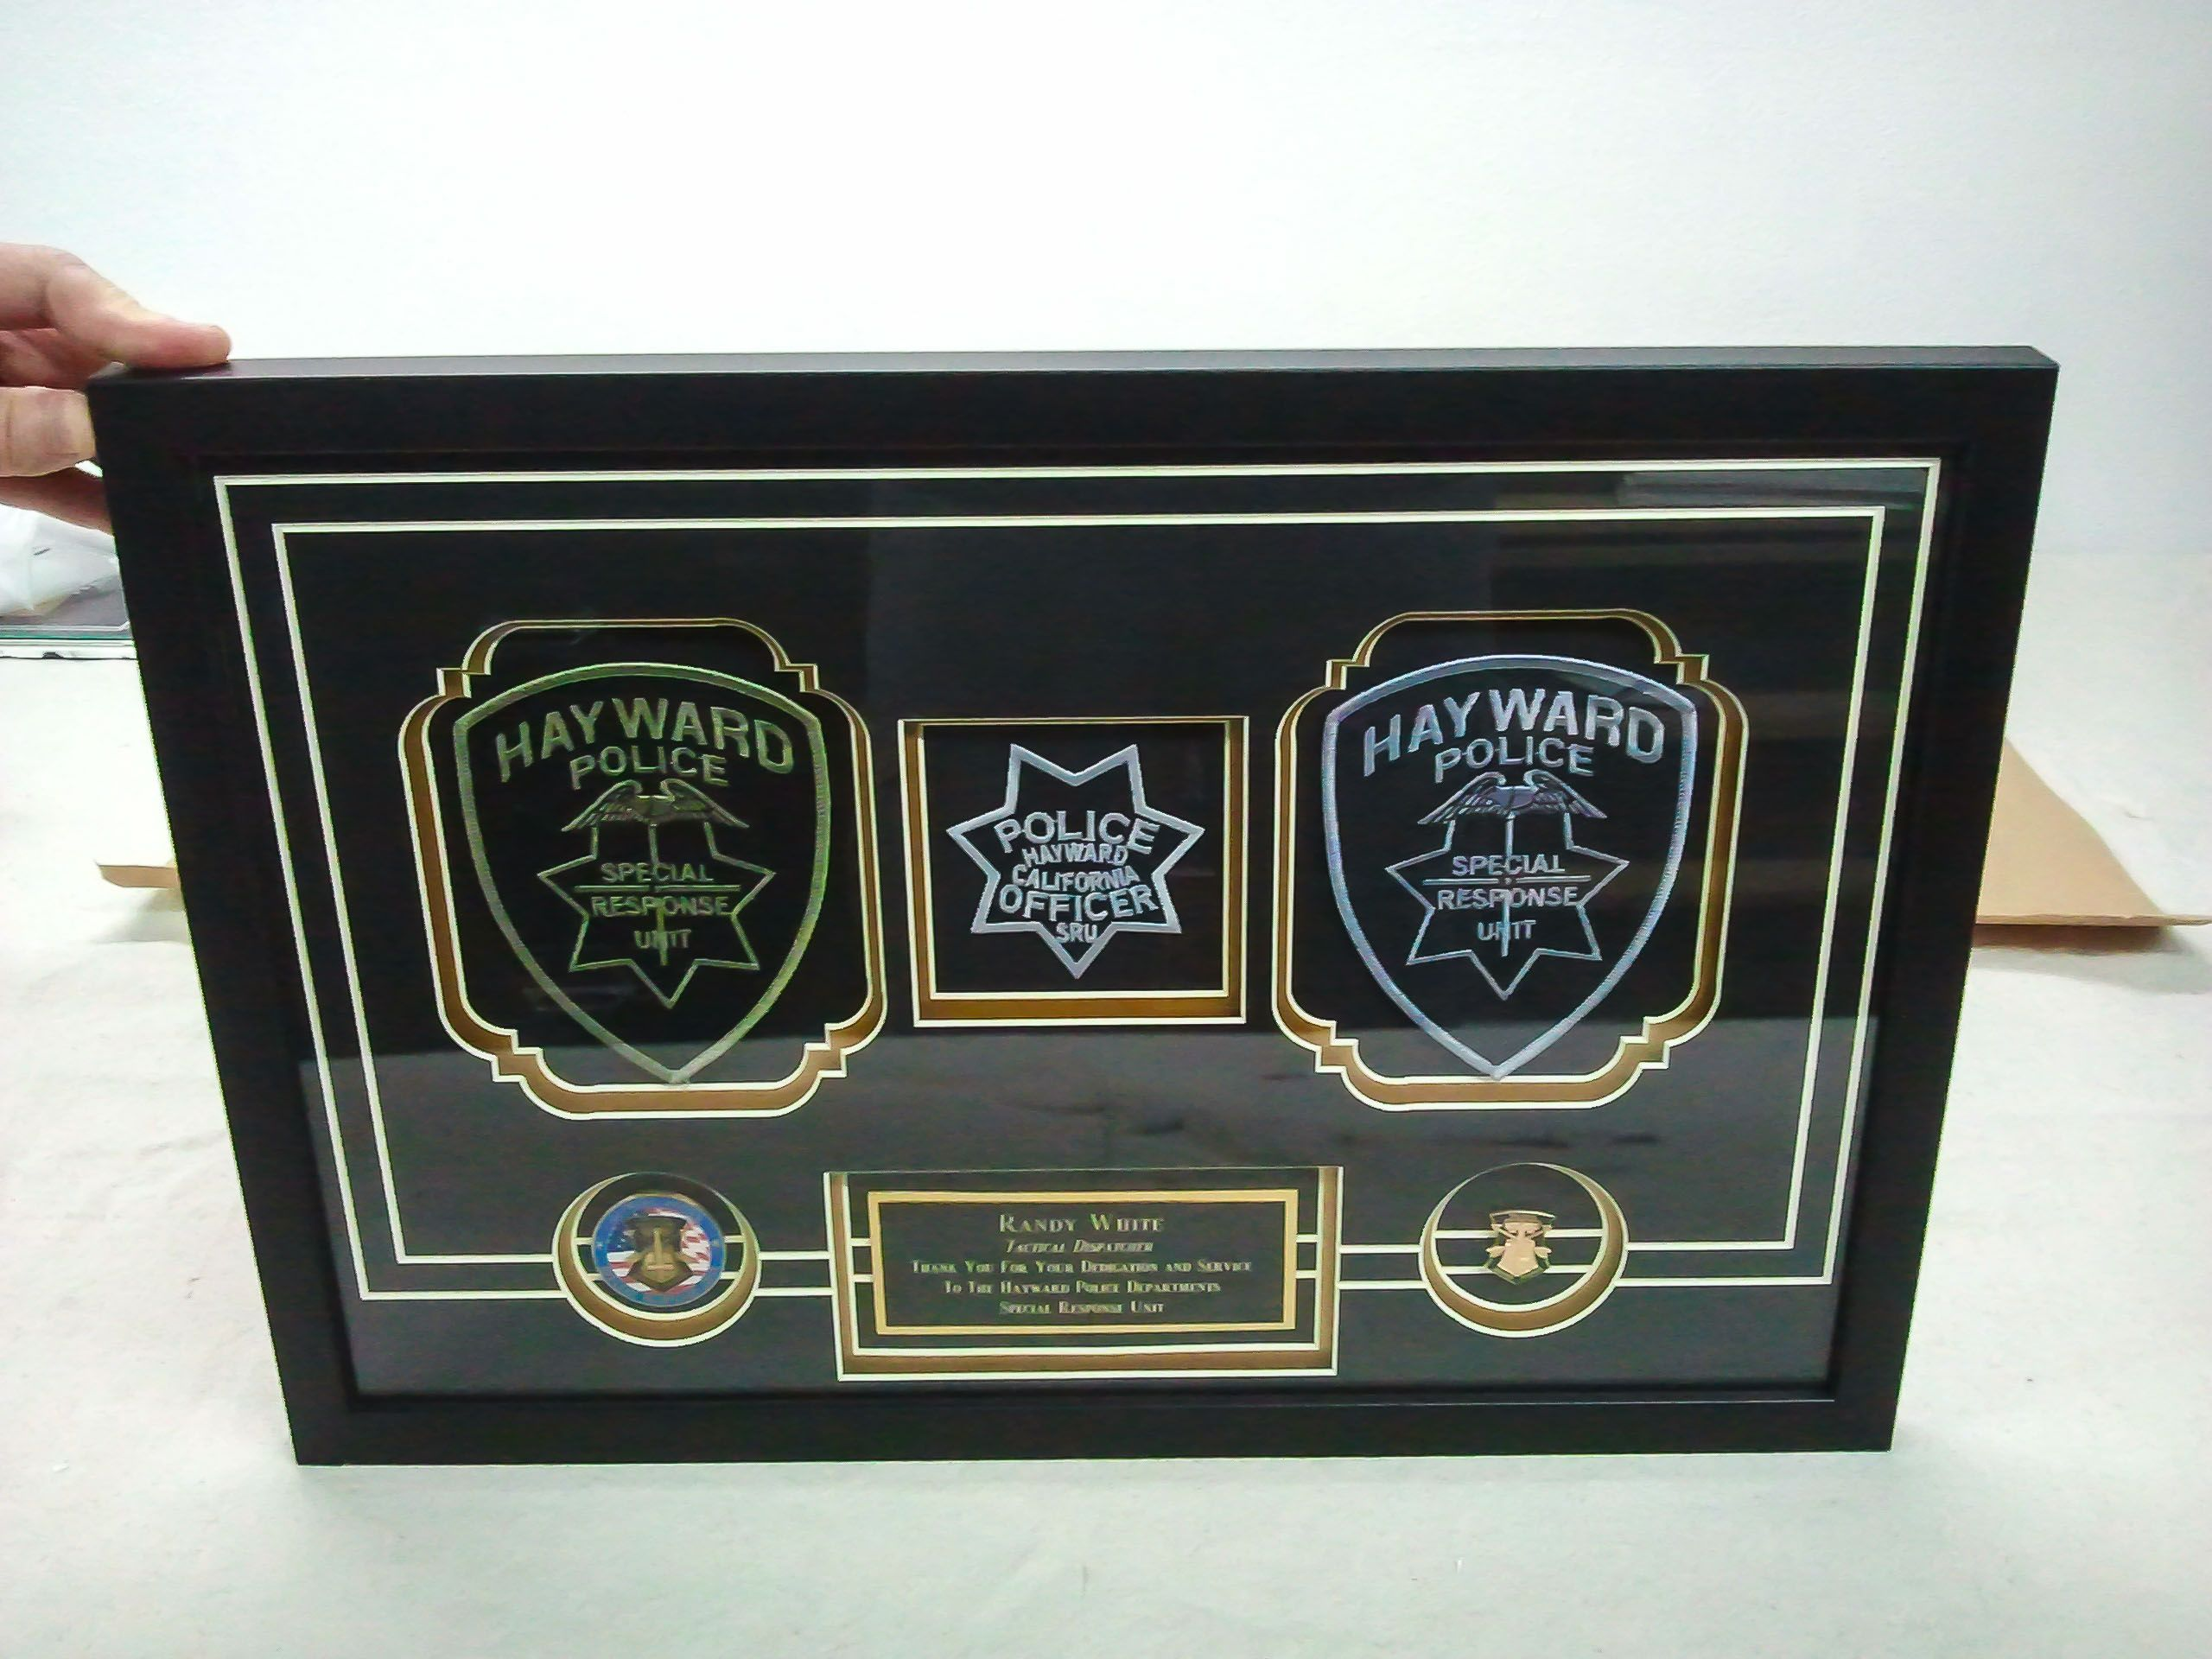 Pin by LnT Custom Picture Framing on law enforcement framing | Pinterest